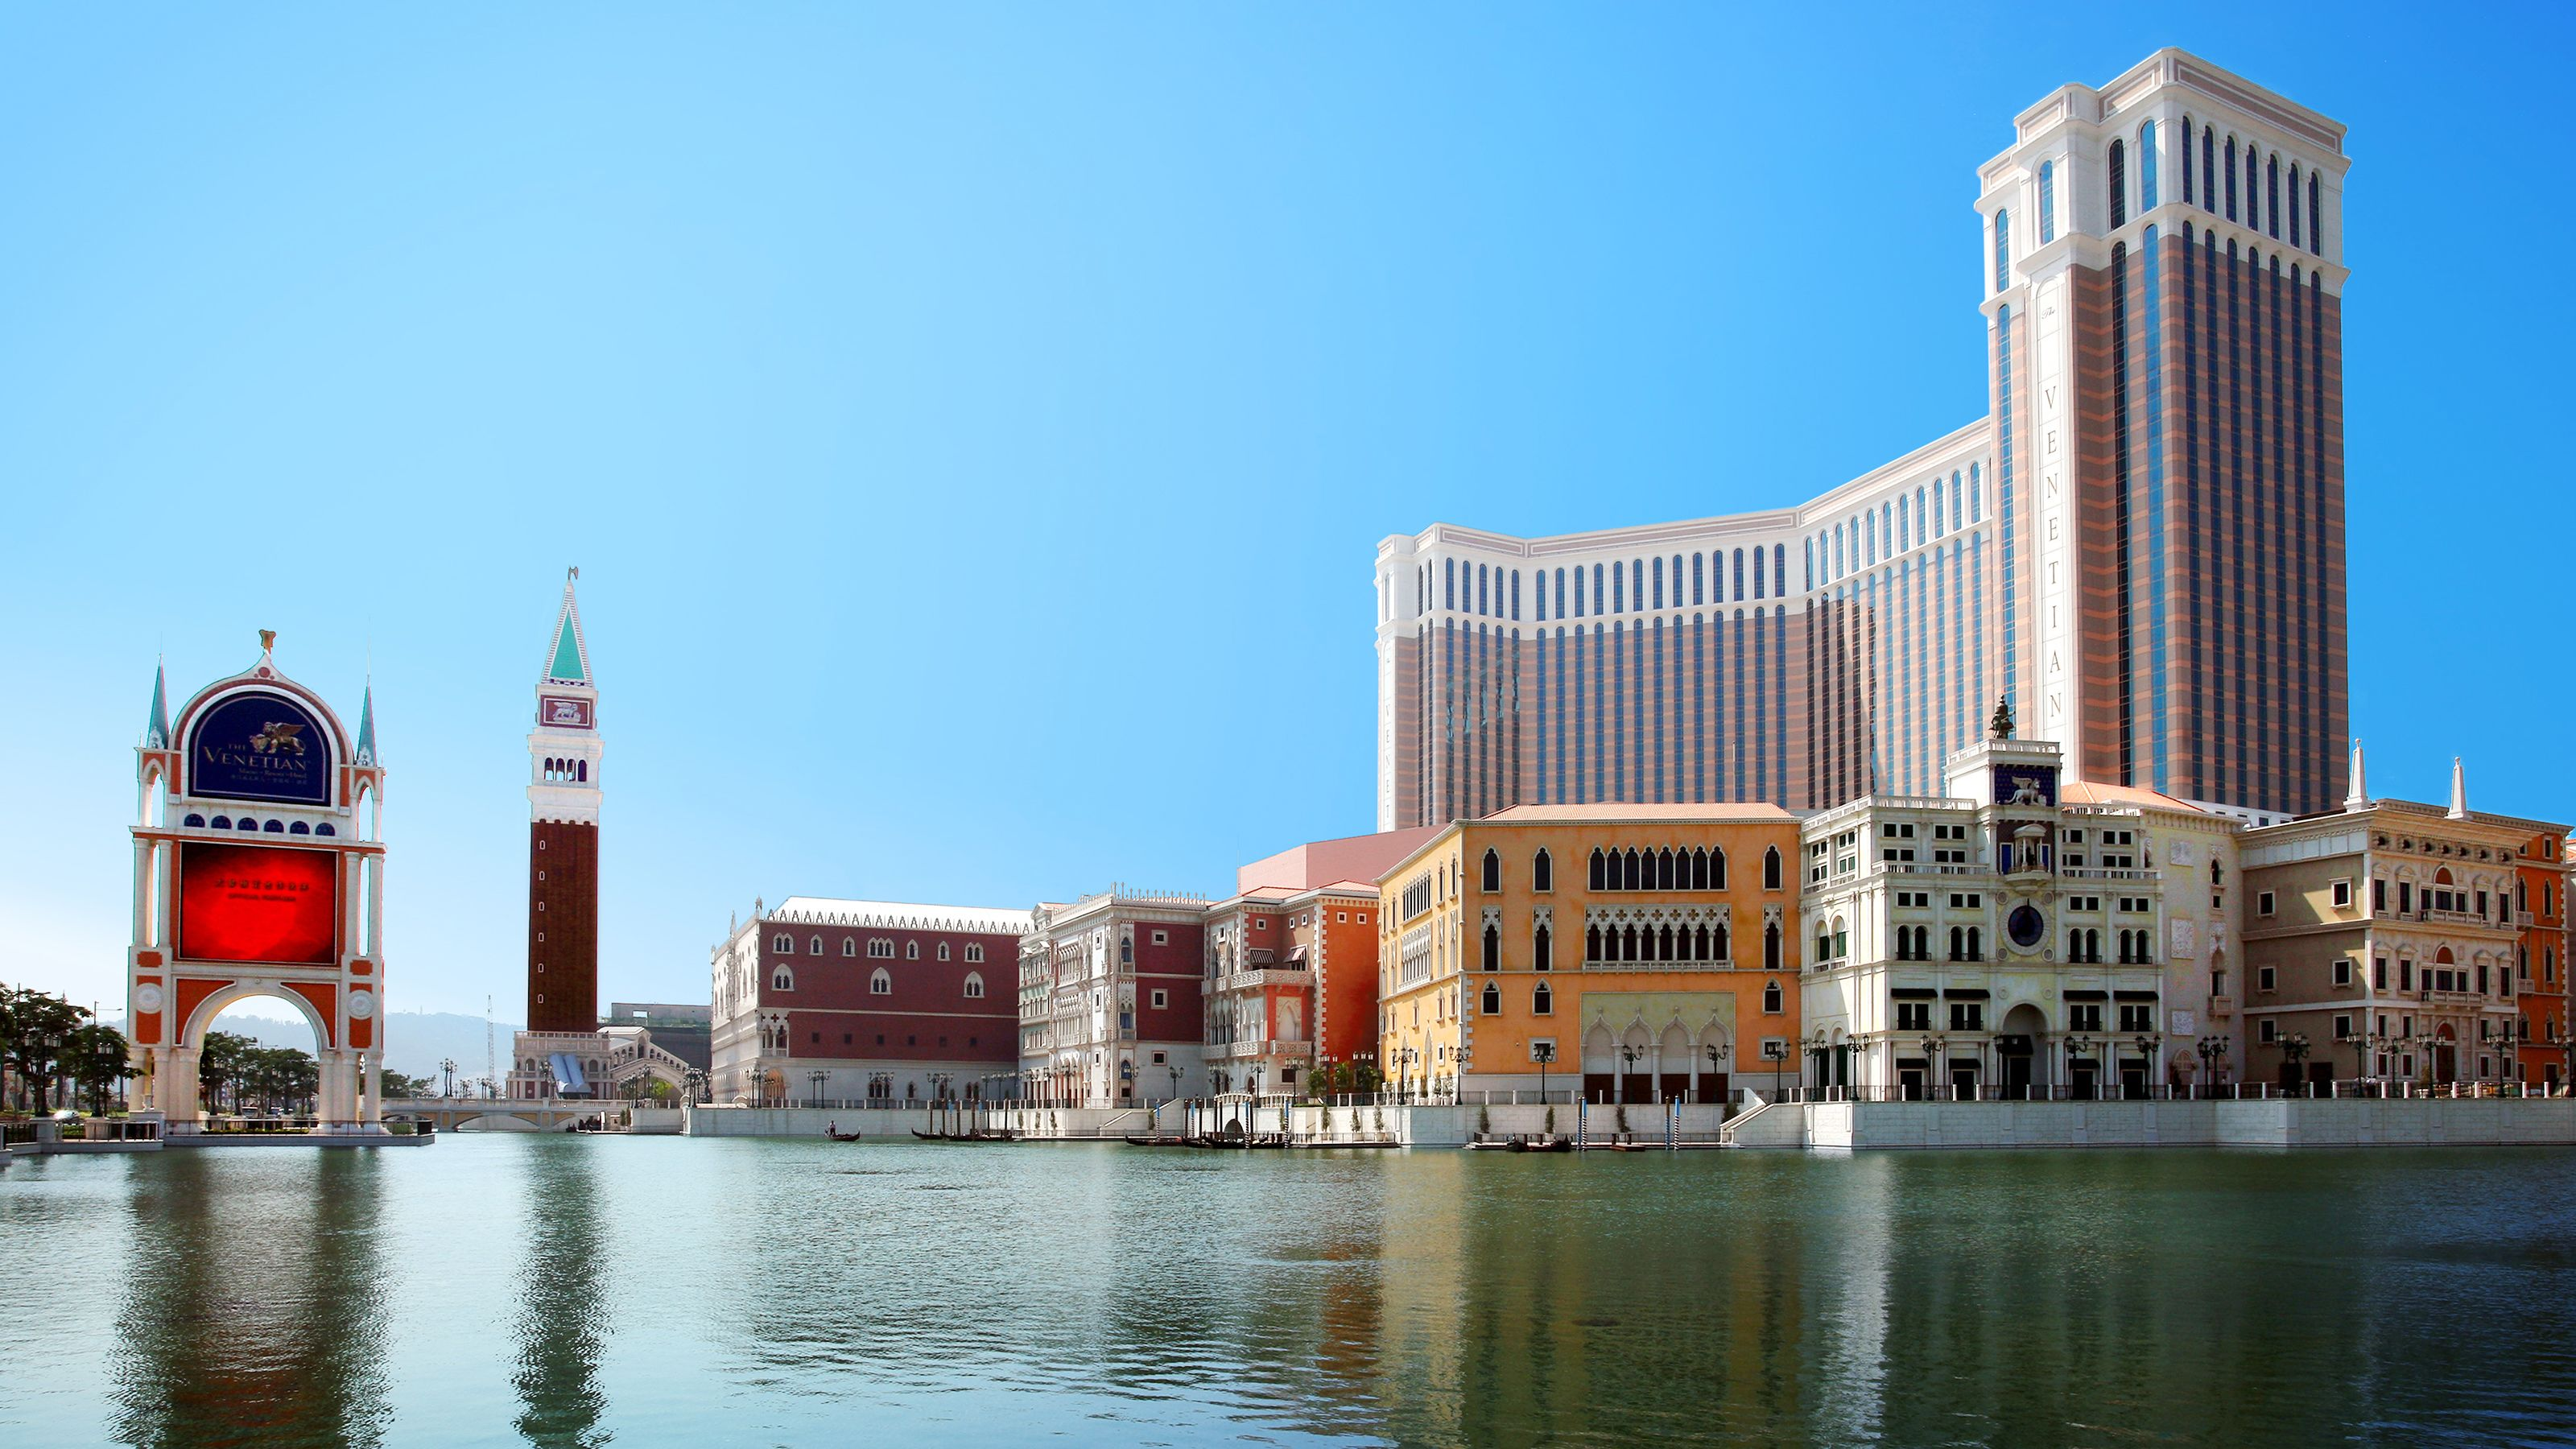 View of hotels on the Macau skyline from the water